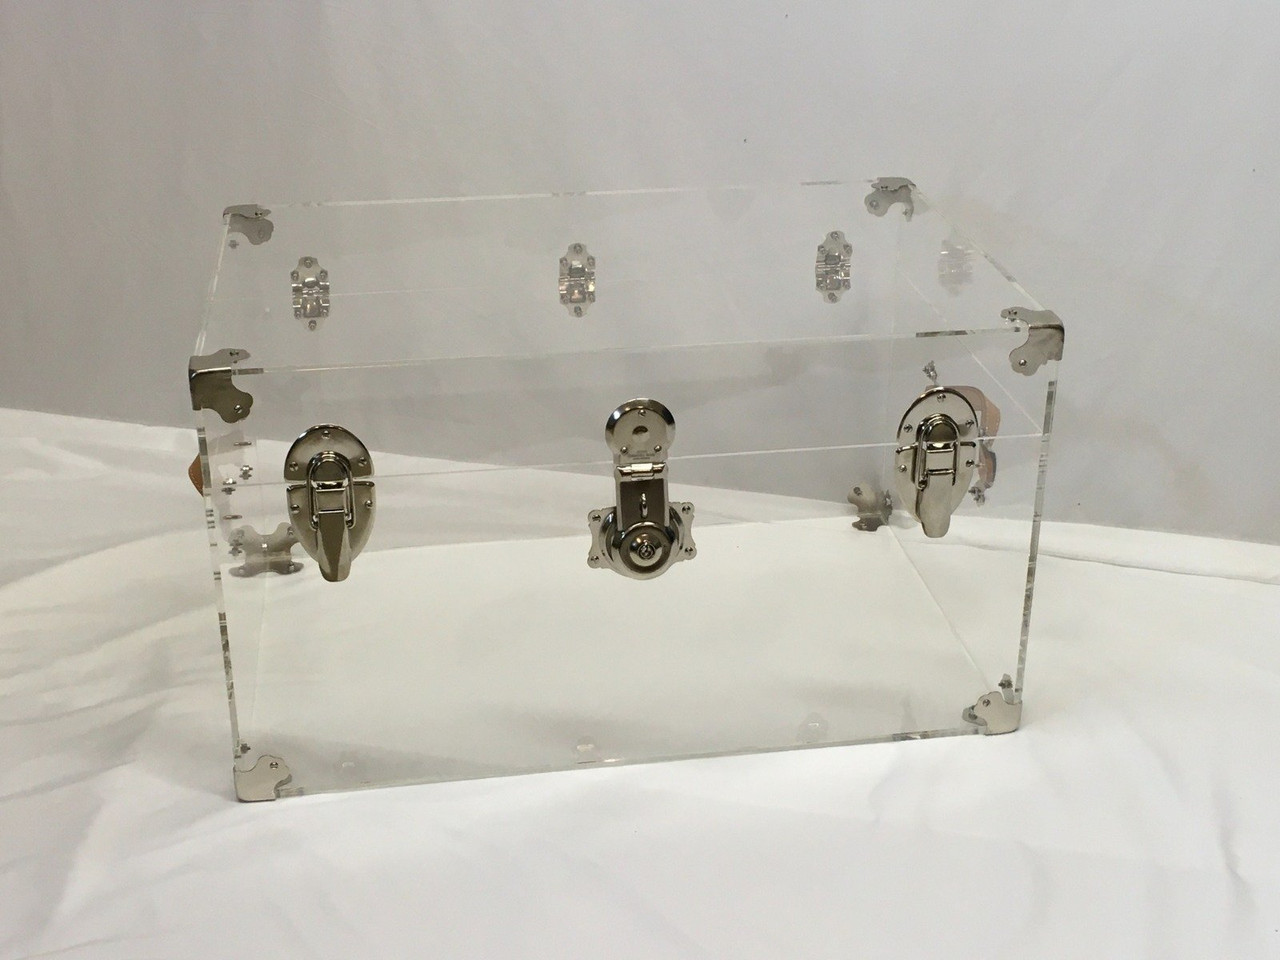 Flat-Top Clear Acrylic Trunk, 28 inches Wide x 18 inches deep x 16 inches high, Silver Hardware